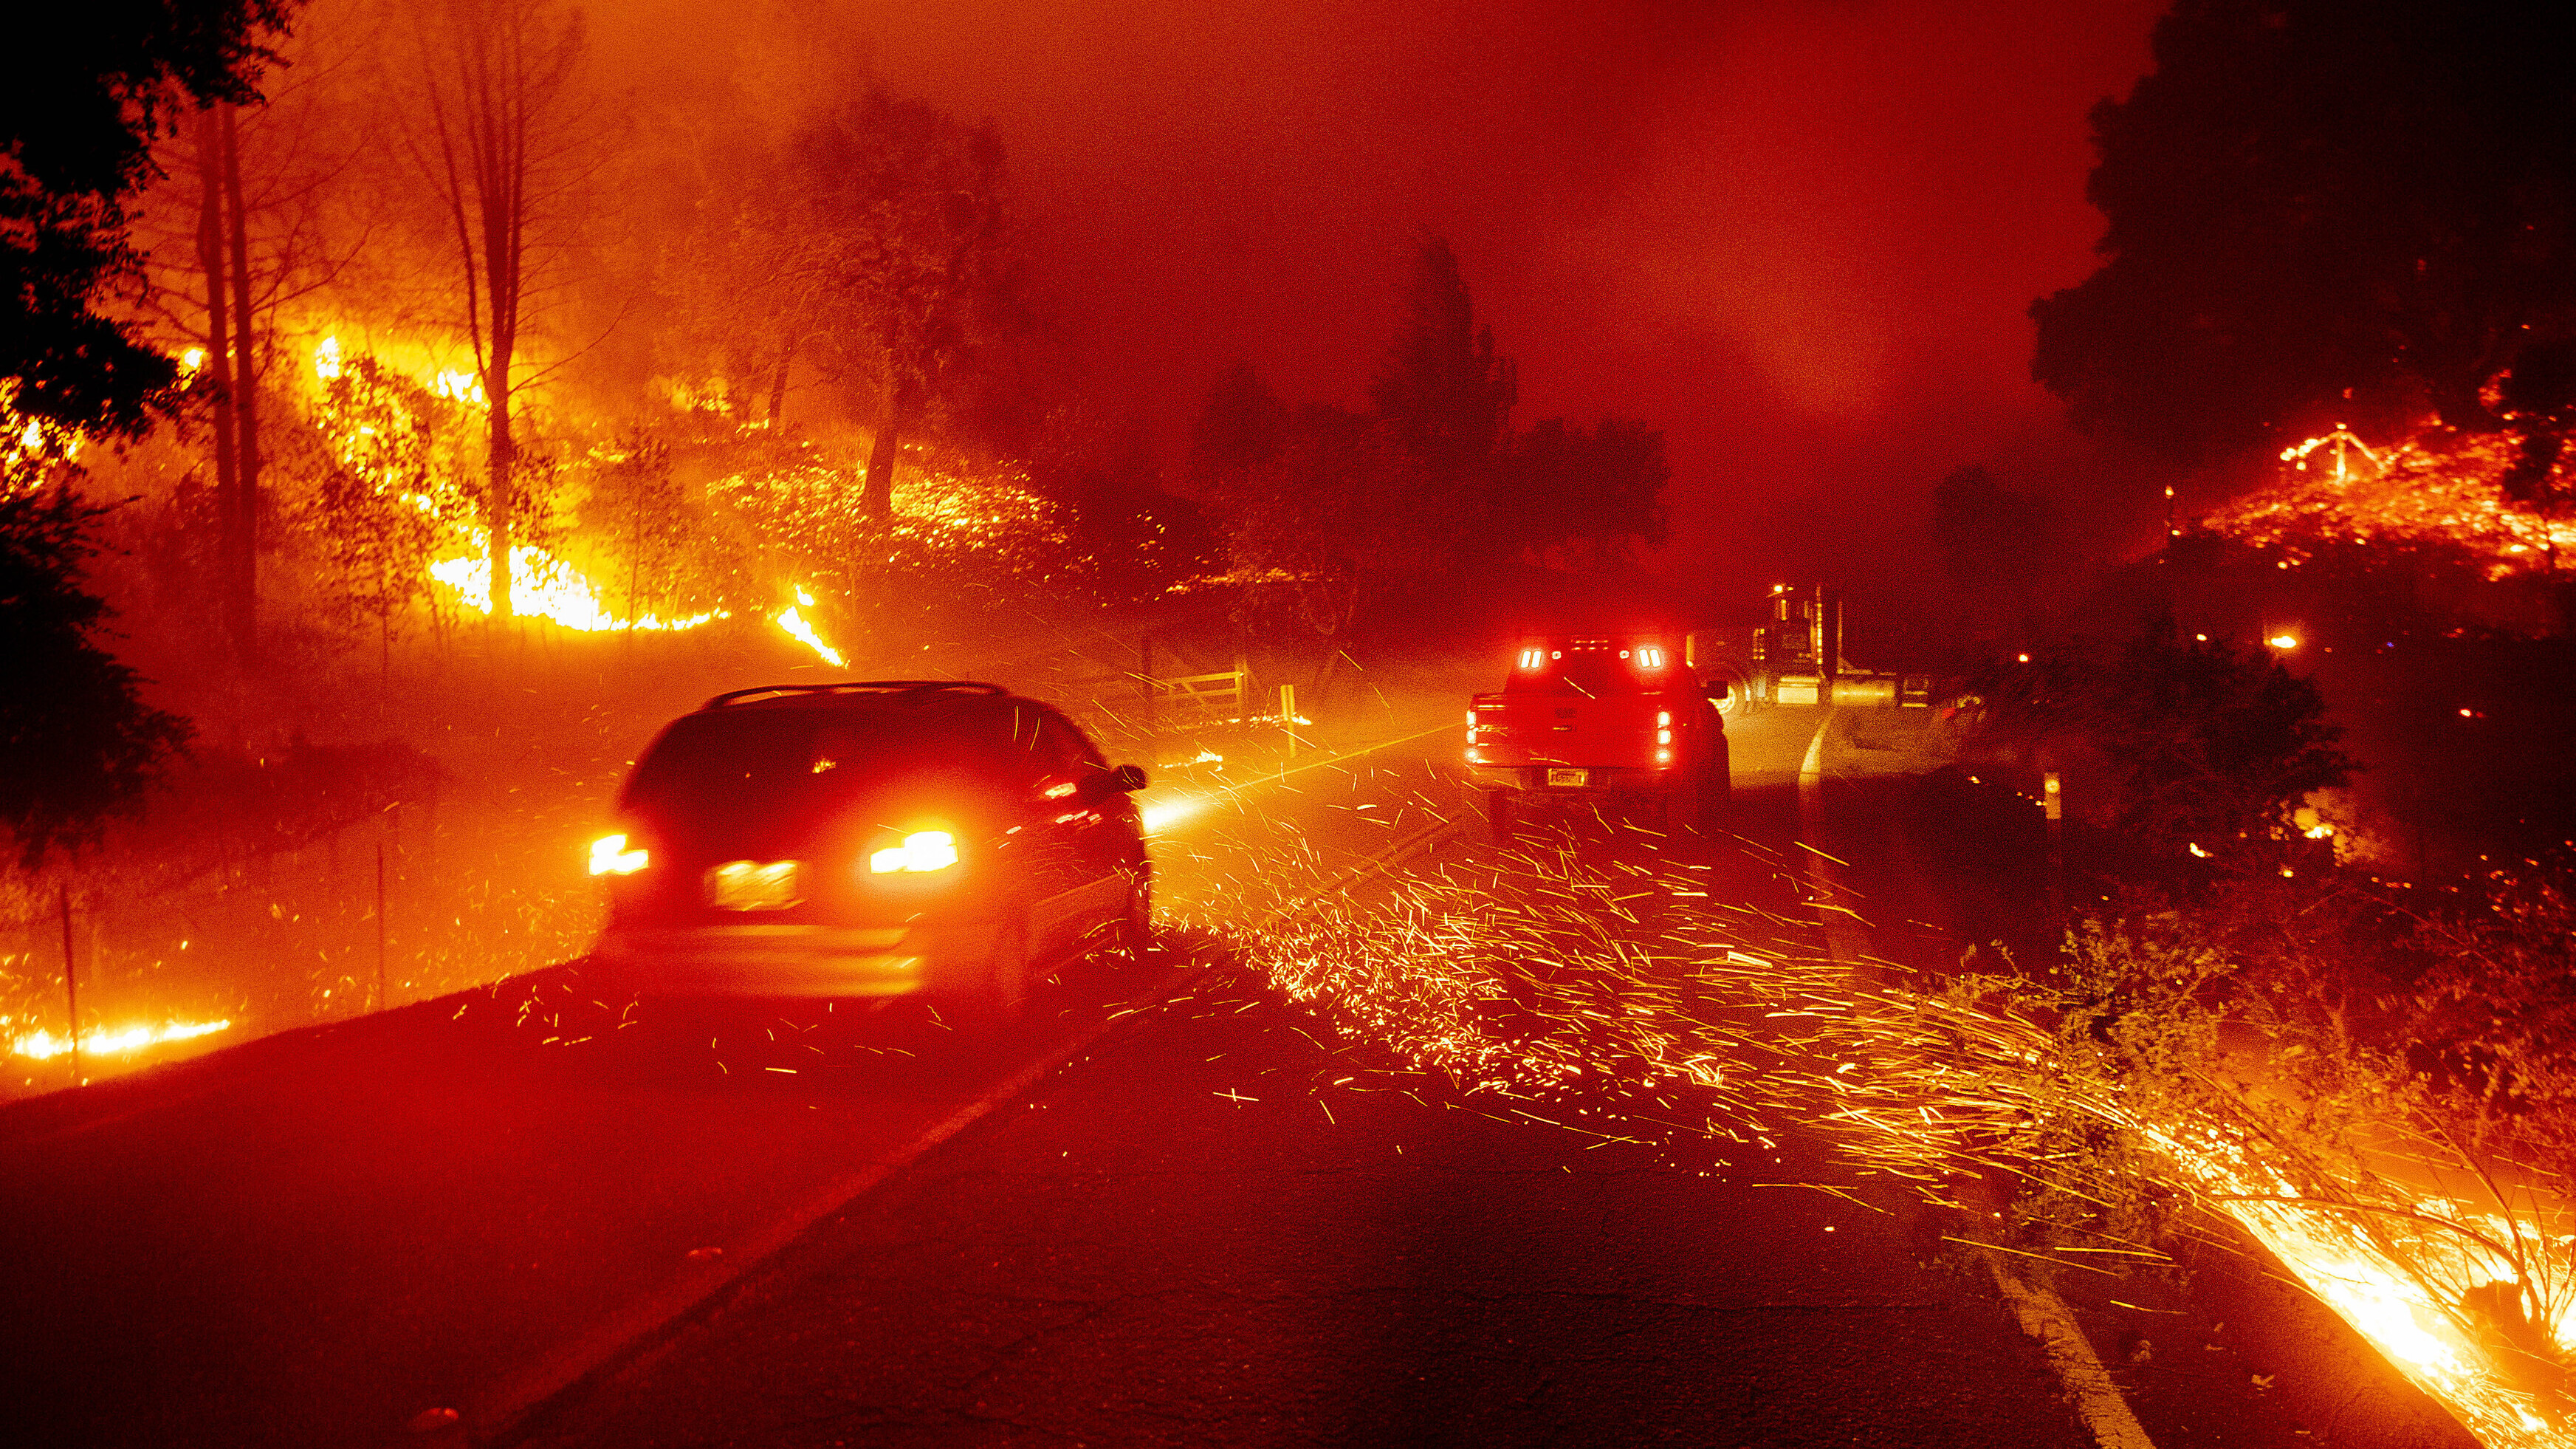 PG&E Warns Of Power Cuts To More Than 2.5 Million People As Wildfires Rage